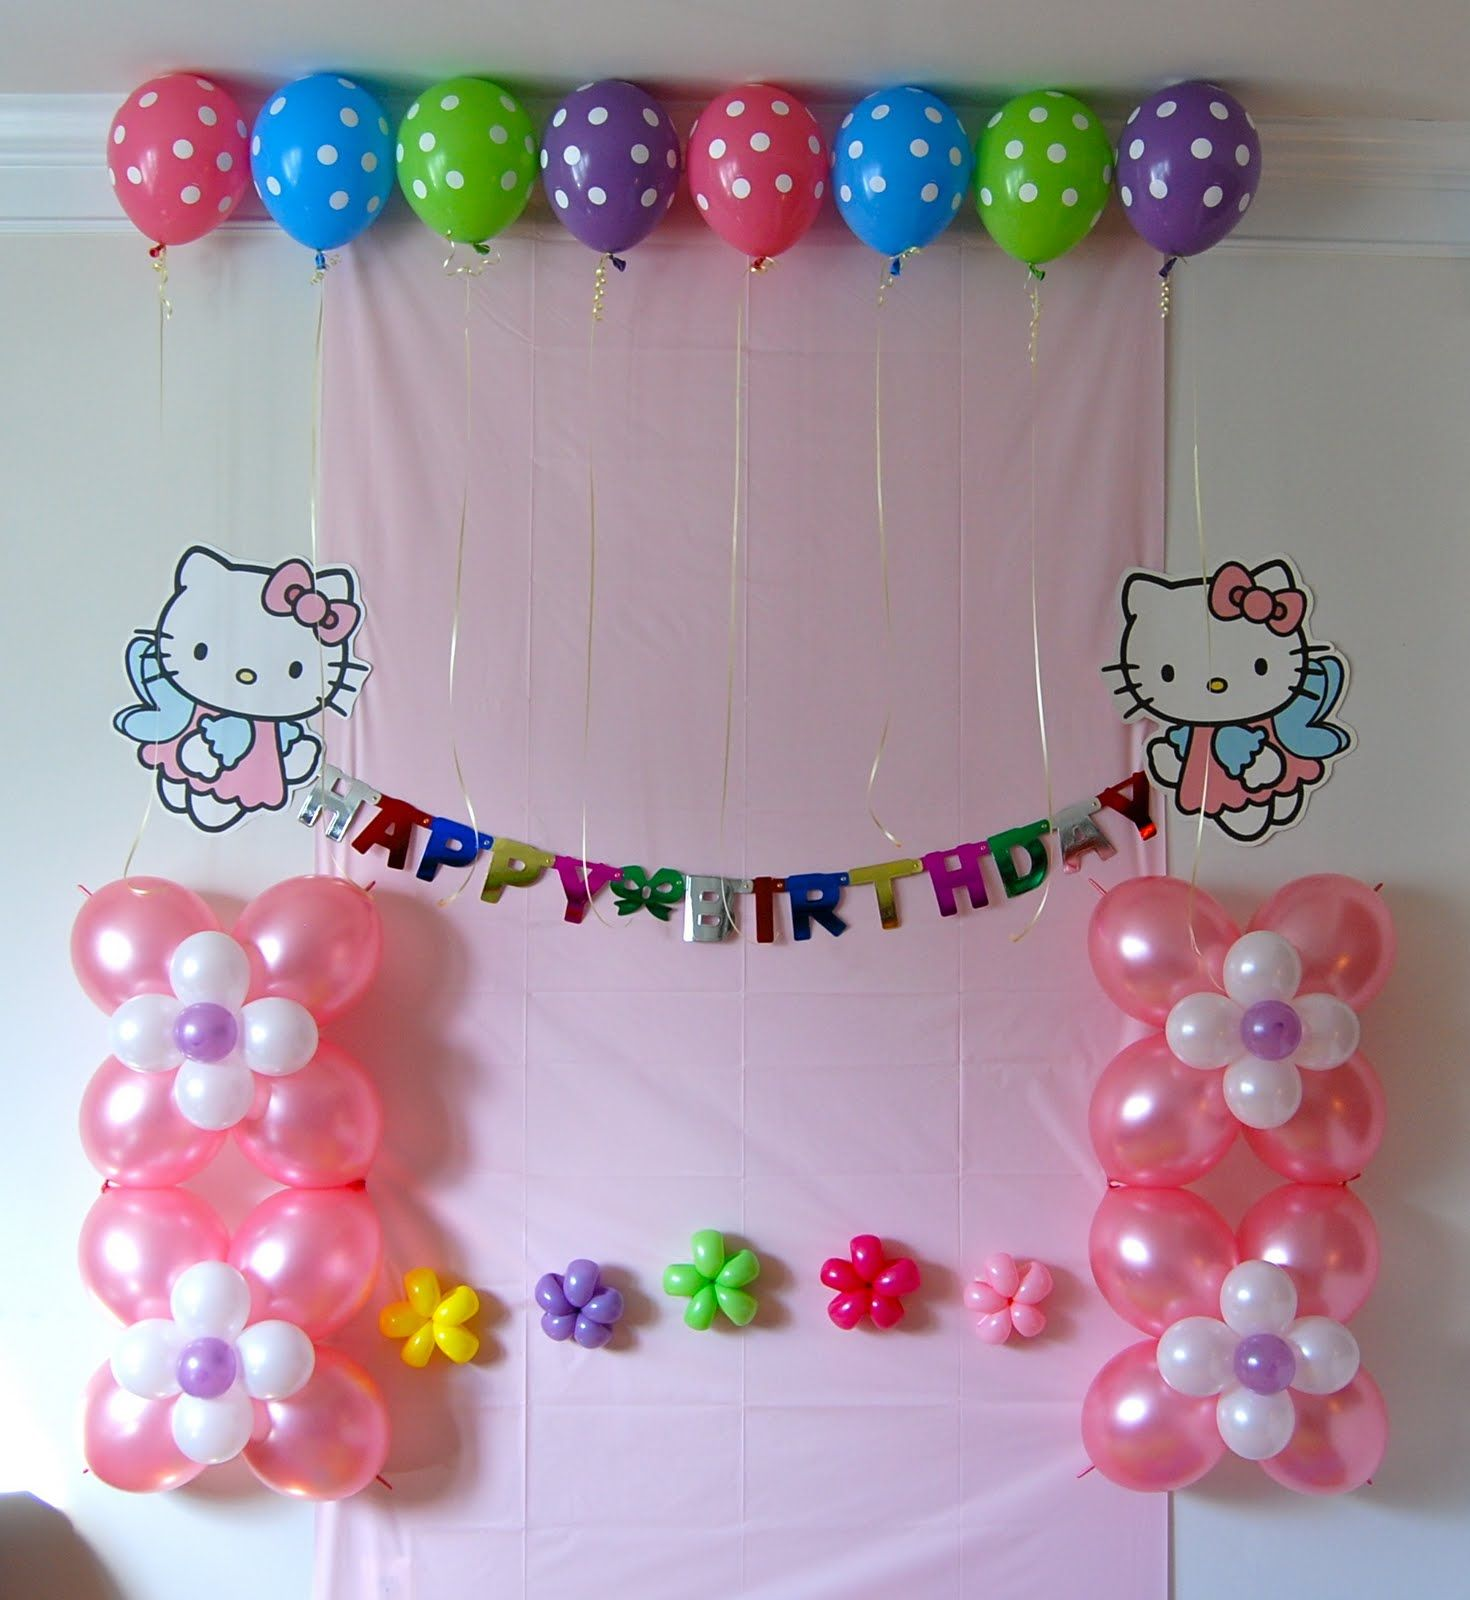 hello kitty birthday party ideas for girls tape balloons to ceiling